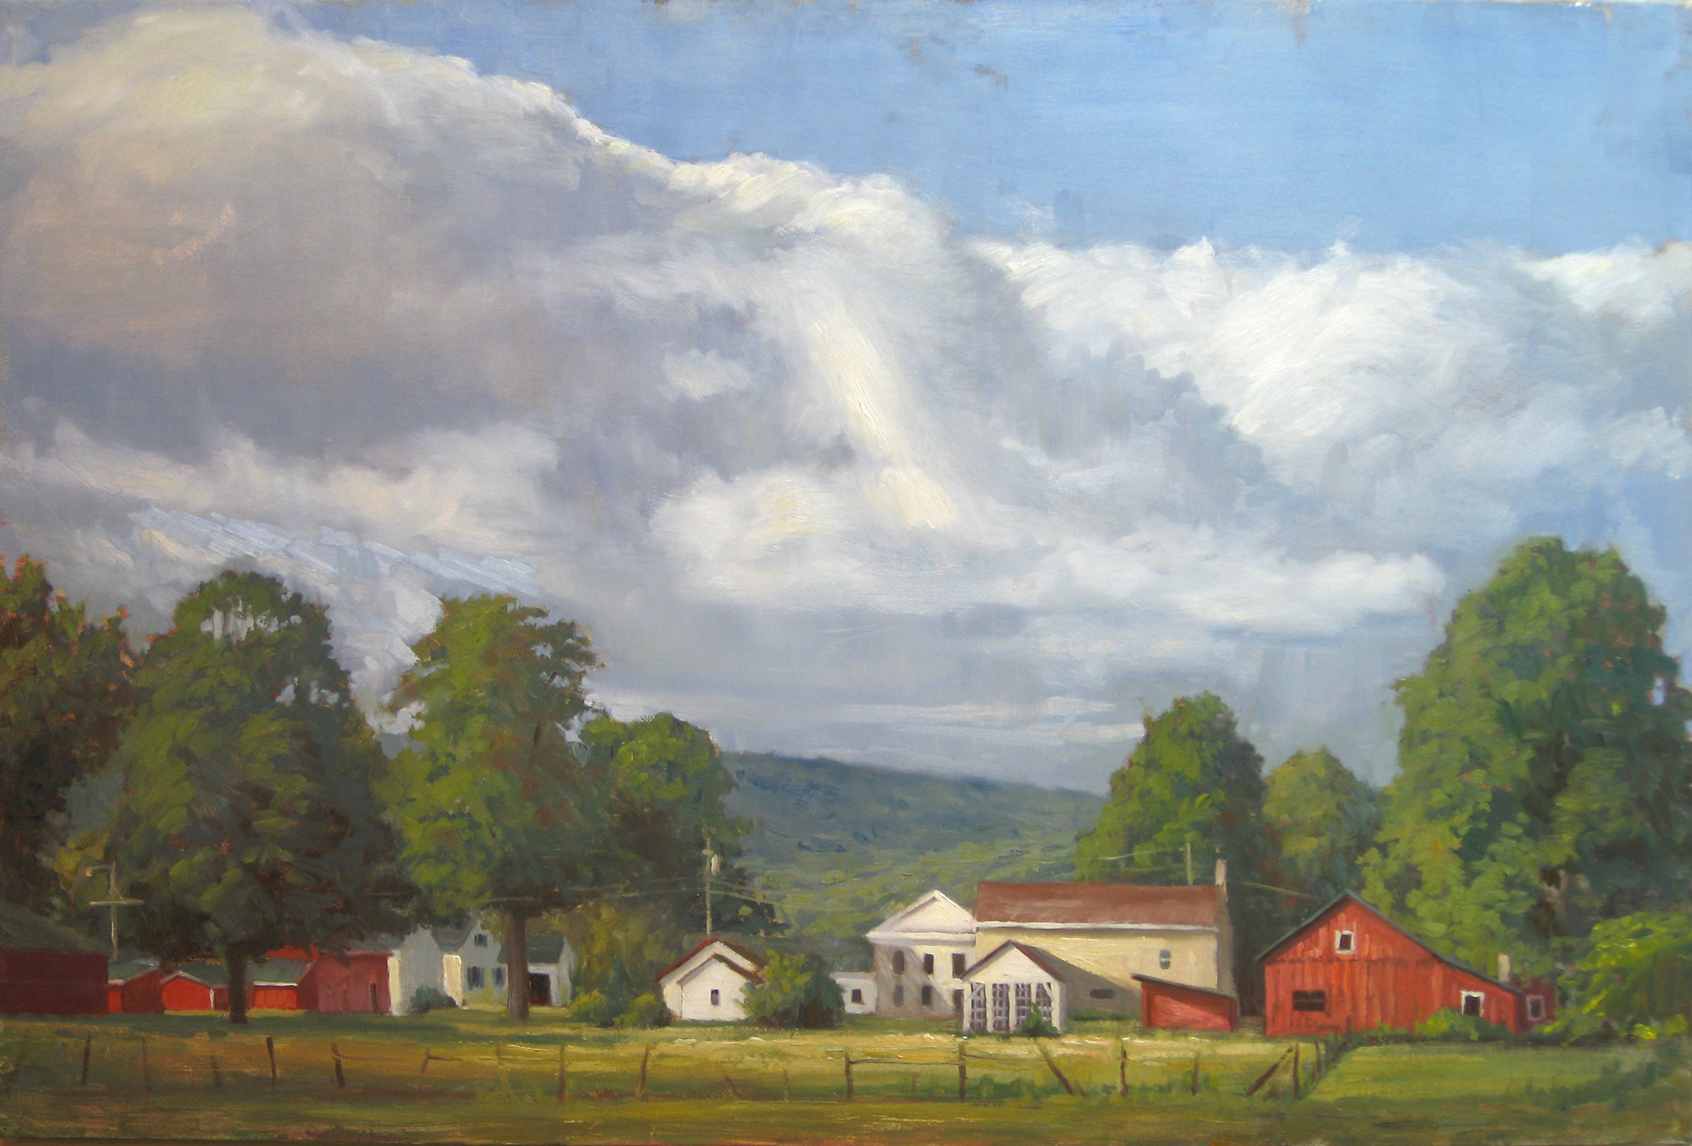 W-BITL-Small Town-Dalrymple-24x36-oil on canvas-2009-SOLD.jpg